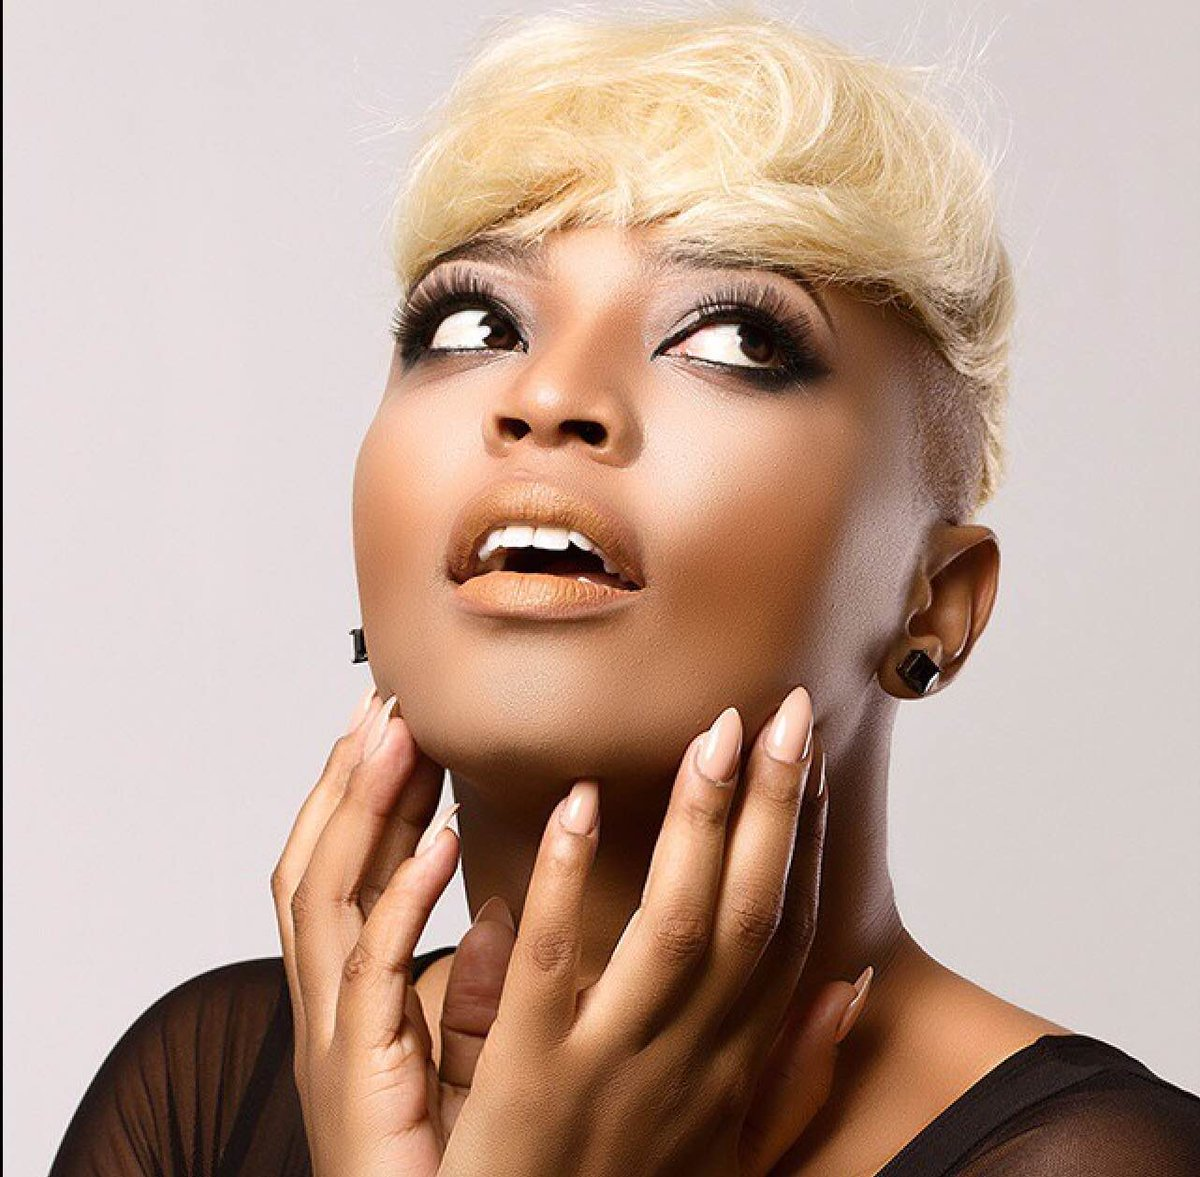 feza and oneal still dating after 3